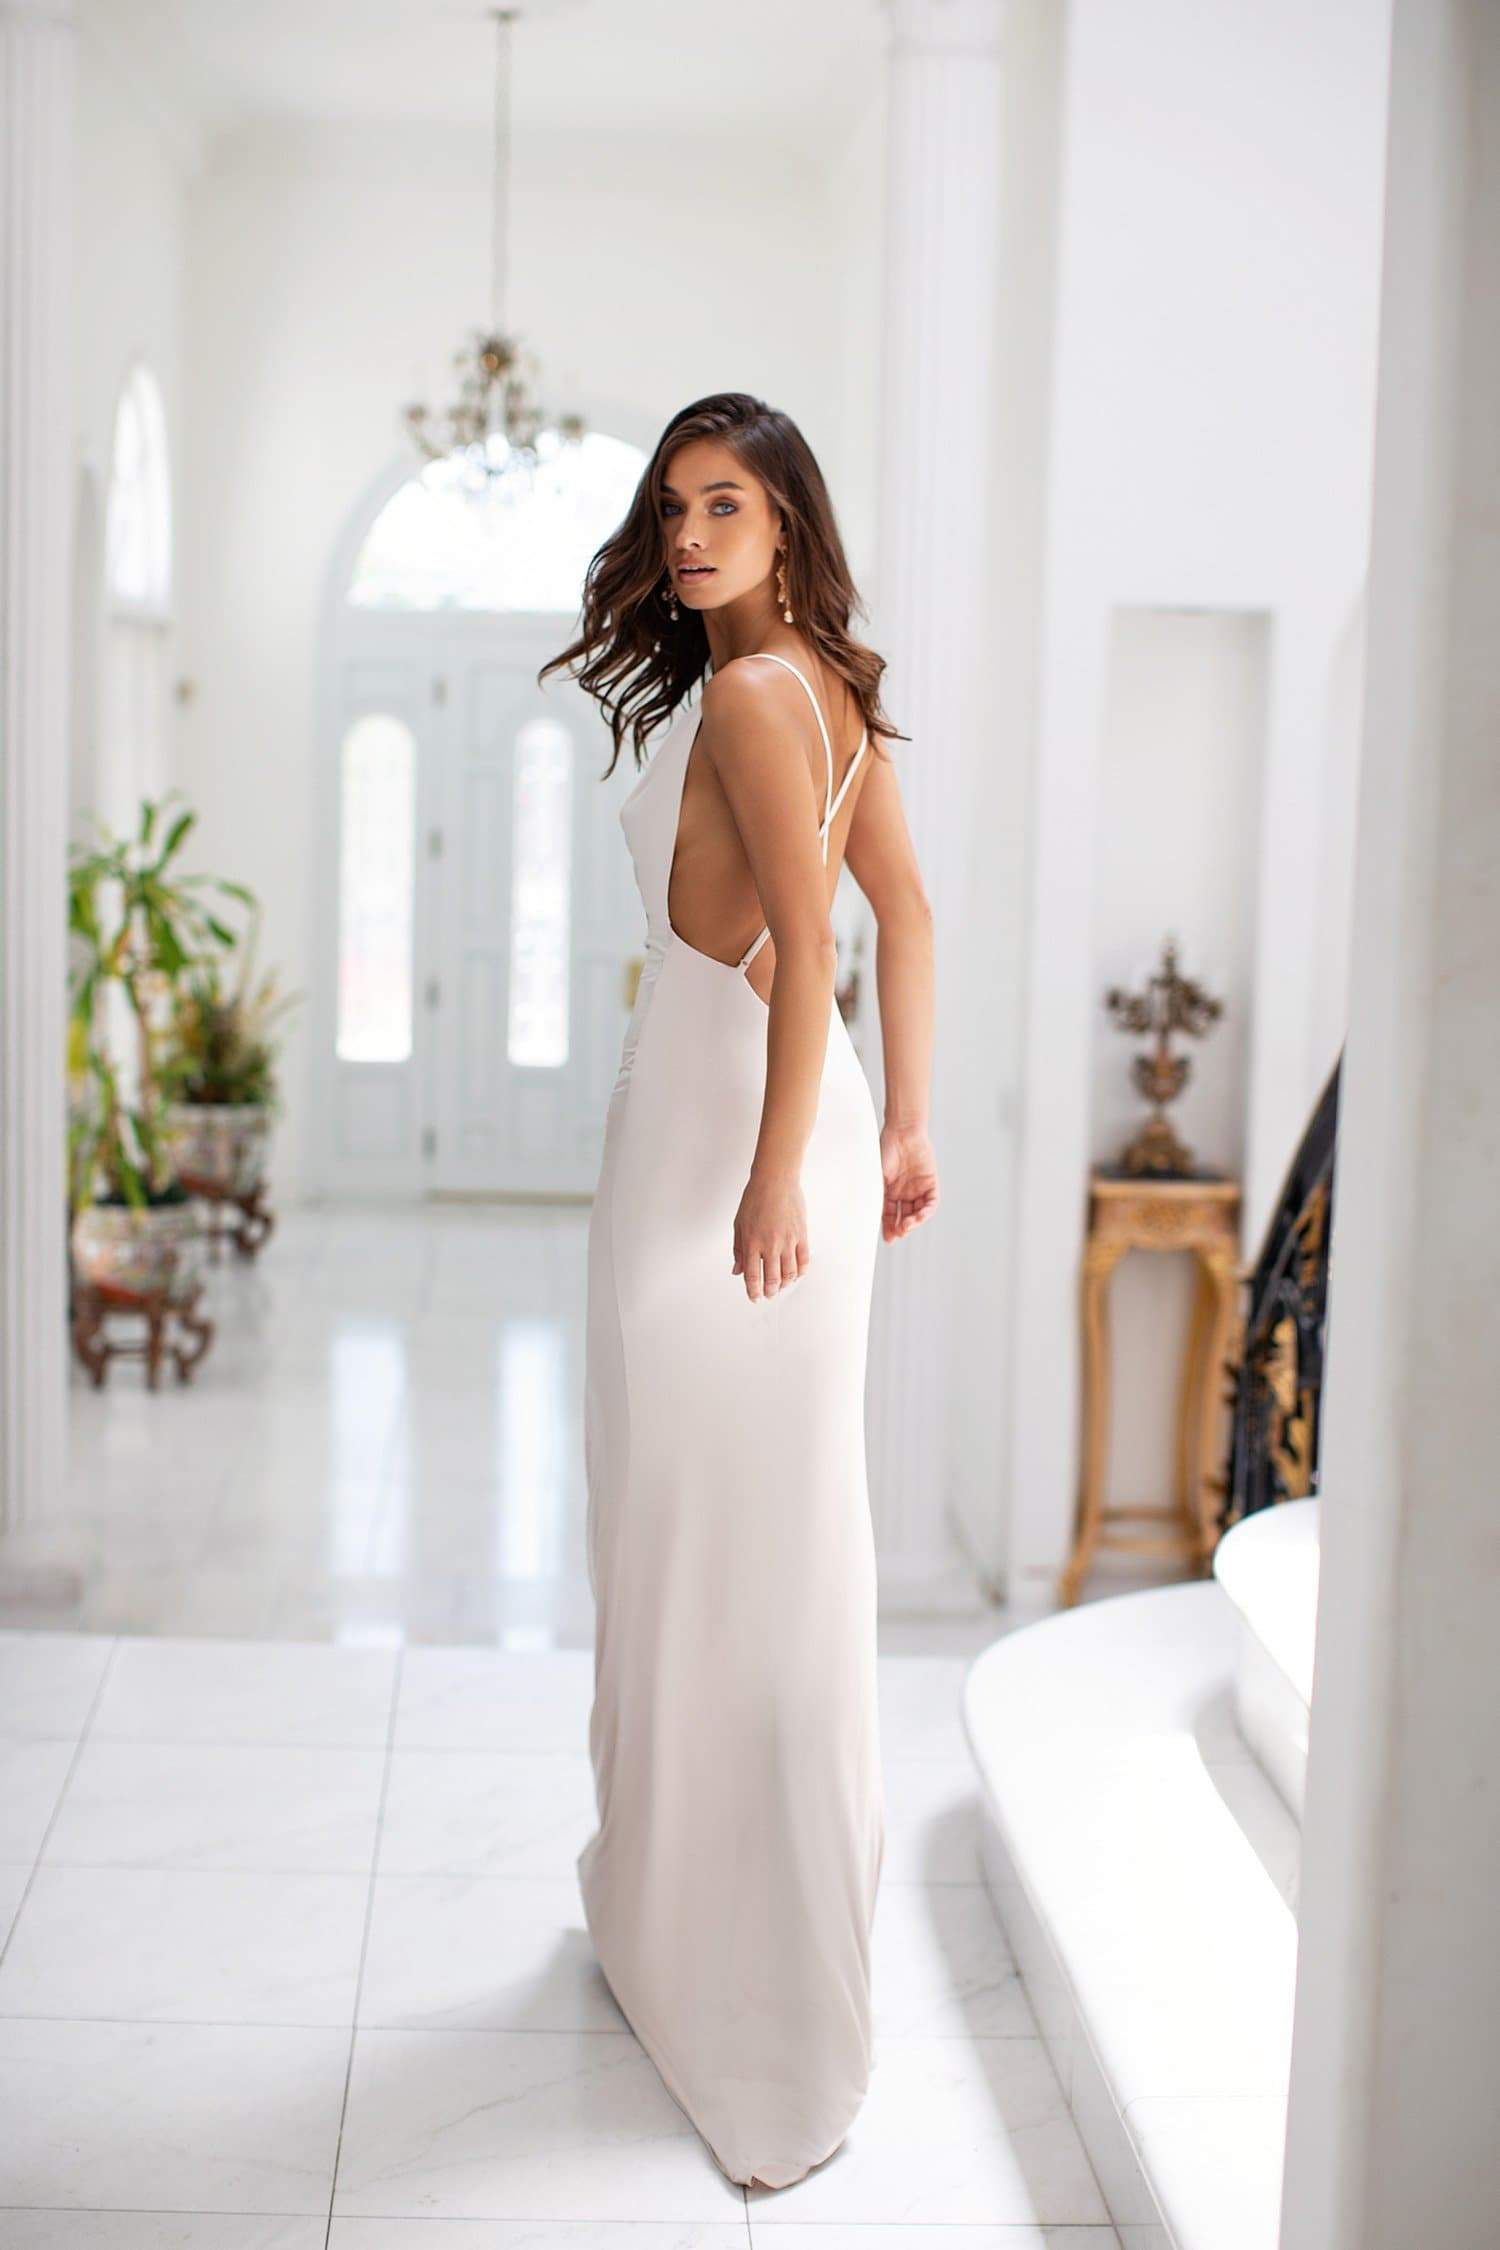 Alyssa - Oyster Gown with Cowl Neck, Criss-Cross Back & Side Slit